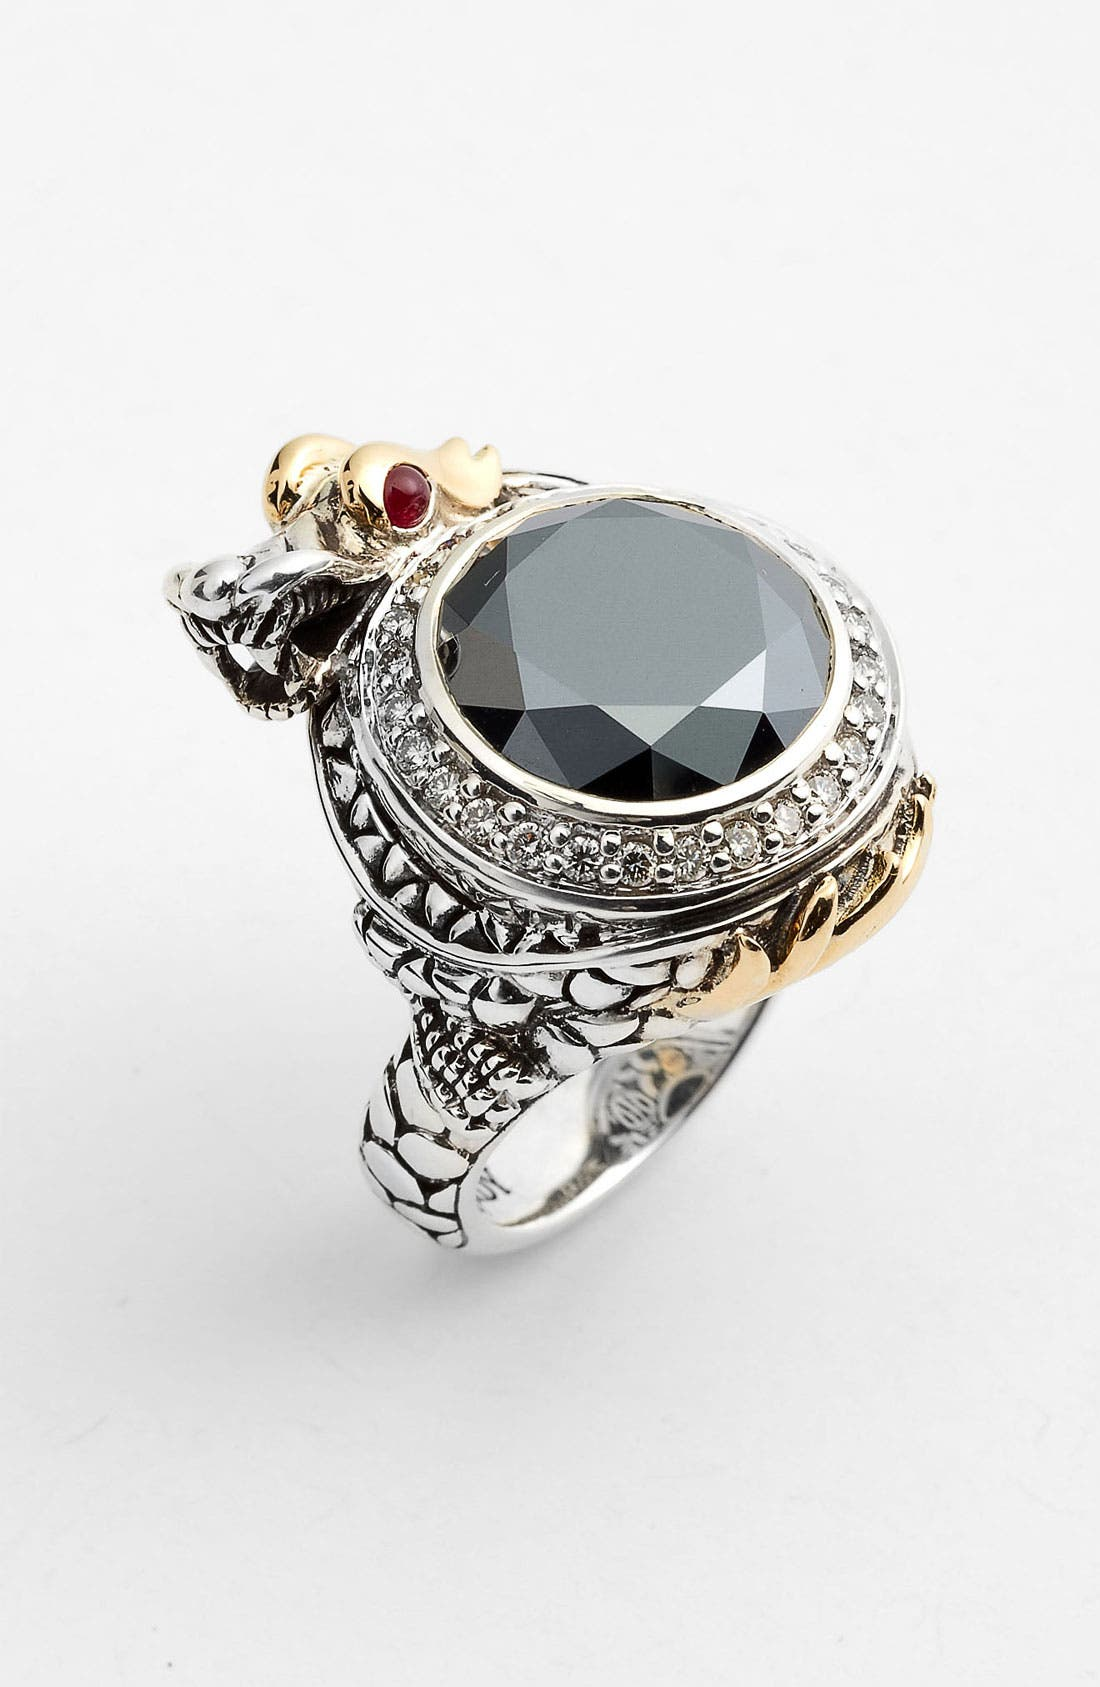 Main Image - John Hardy 'Naga Batu' Dragon Ring